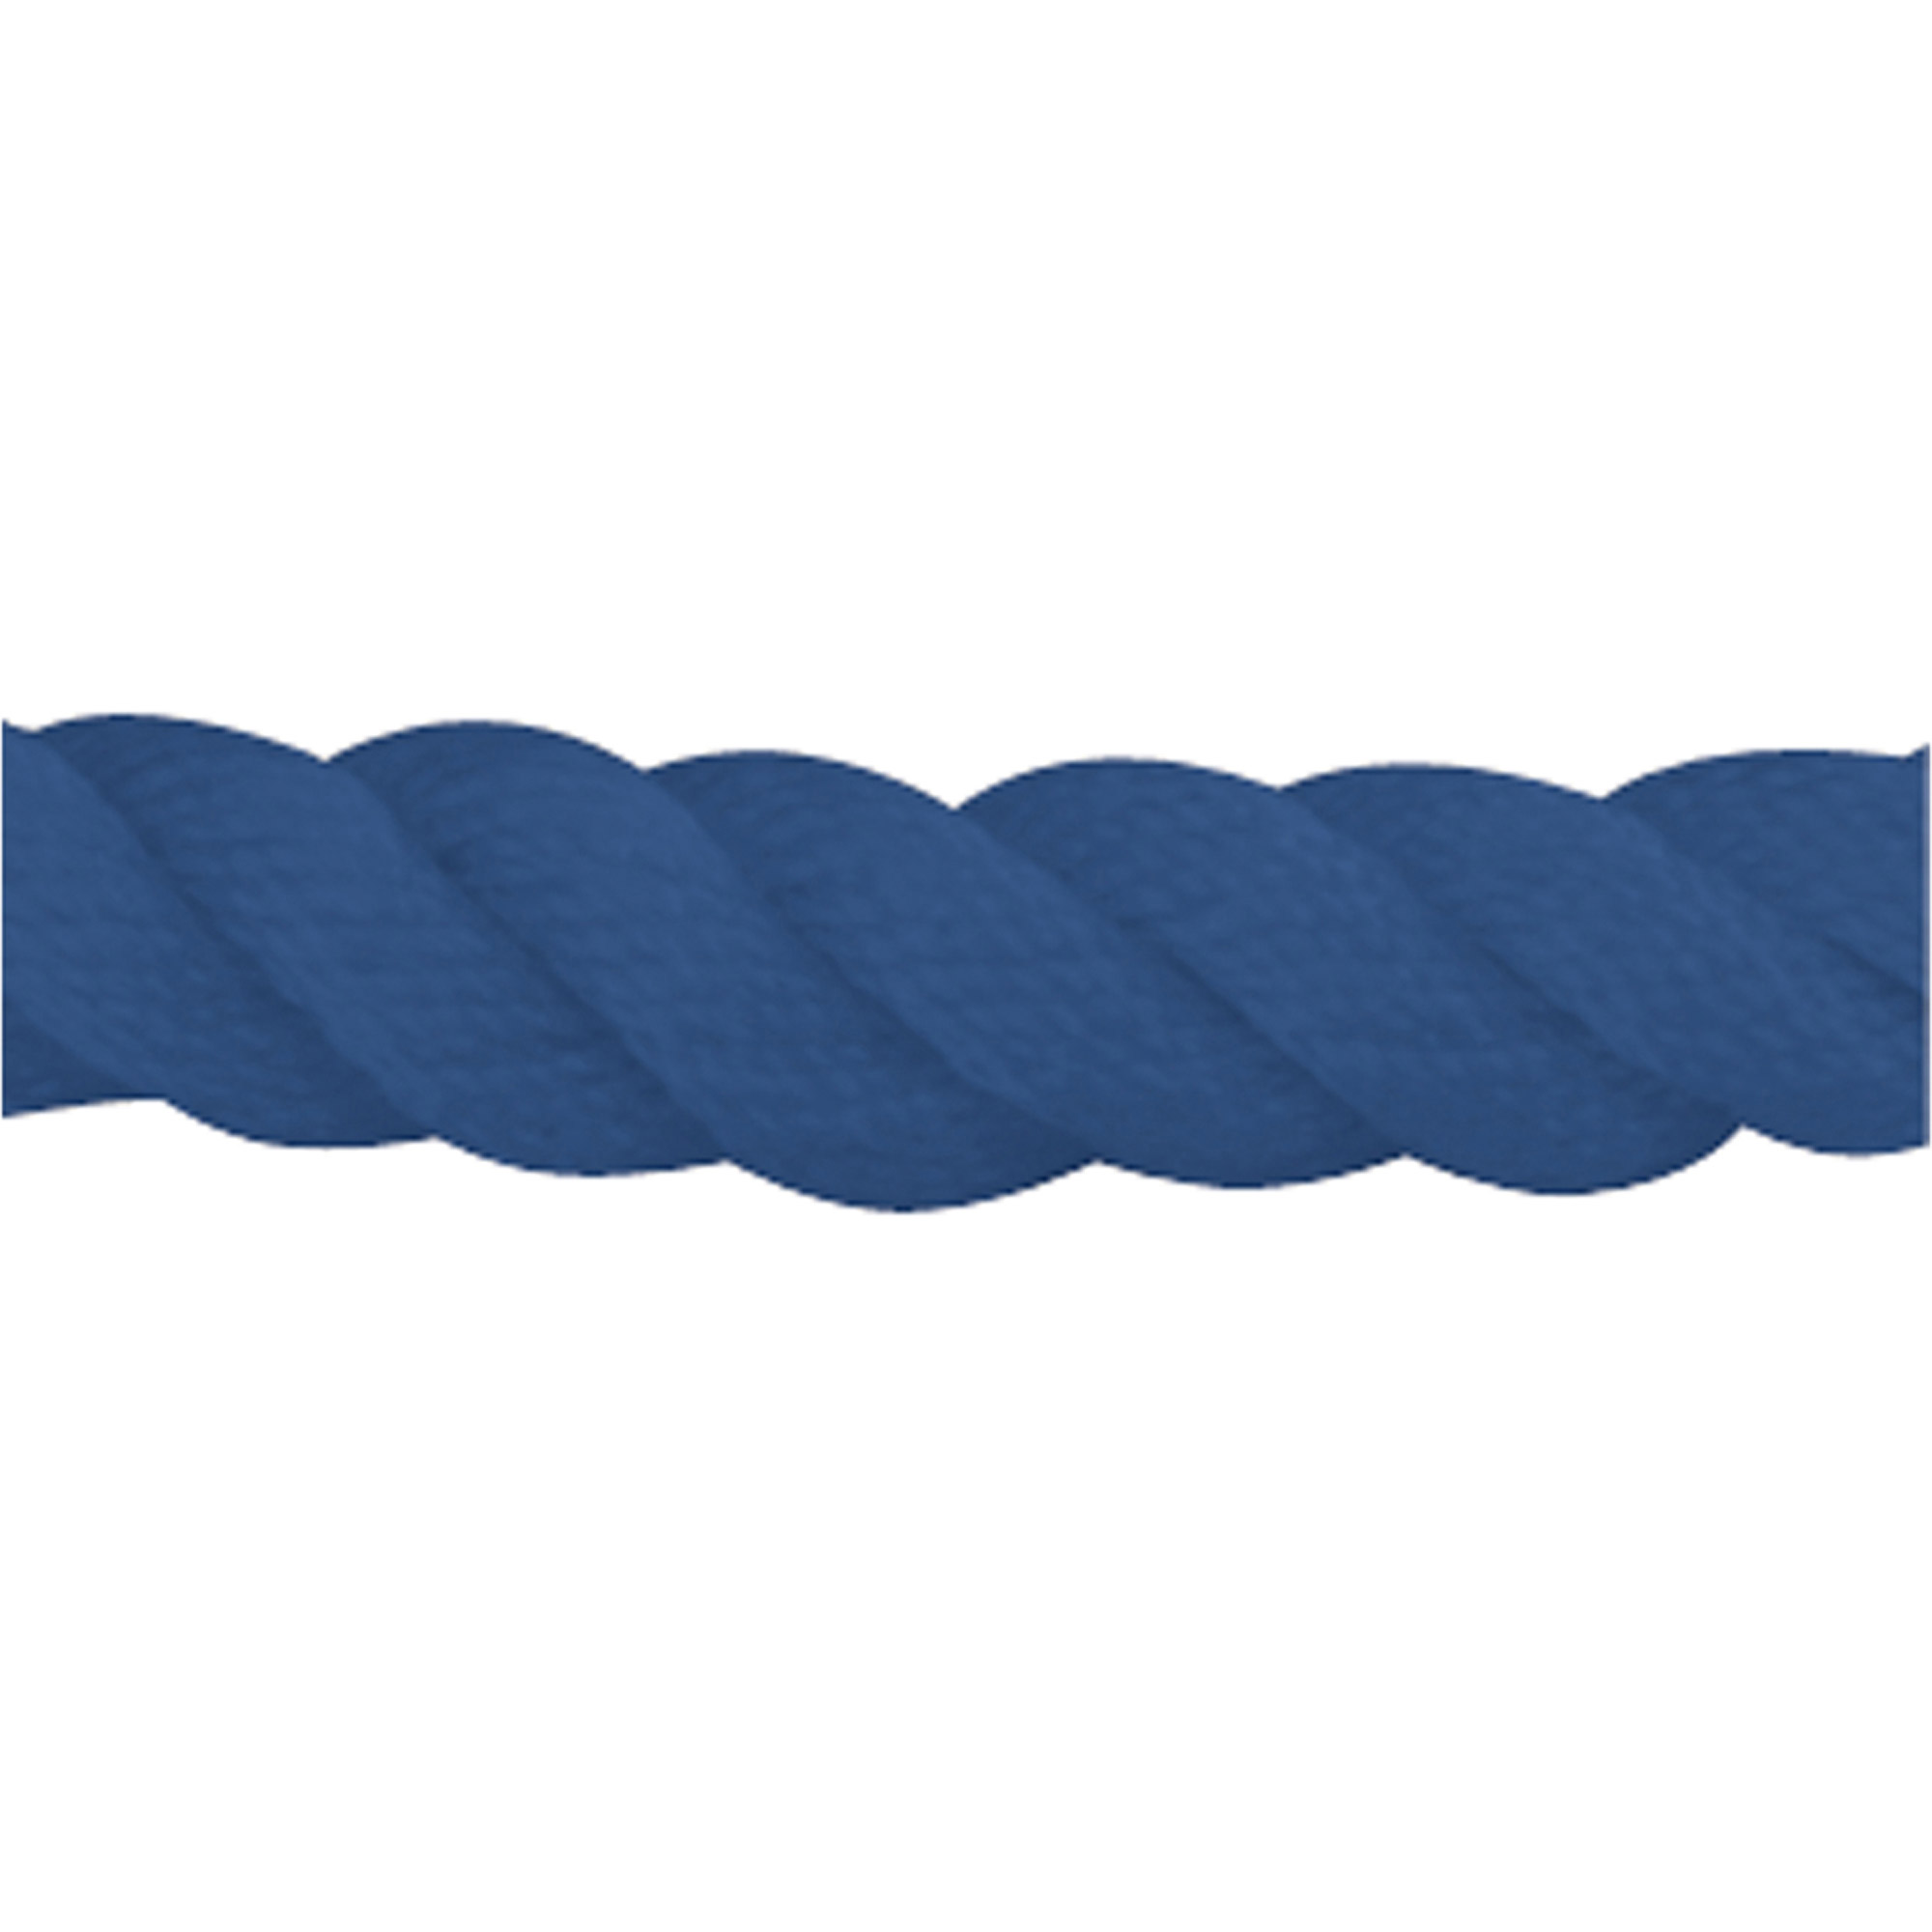 "Sea Dog Dock Line, Twisted Nylon, 3 8"" x 10', Blue by Sea Dog"